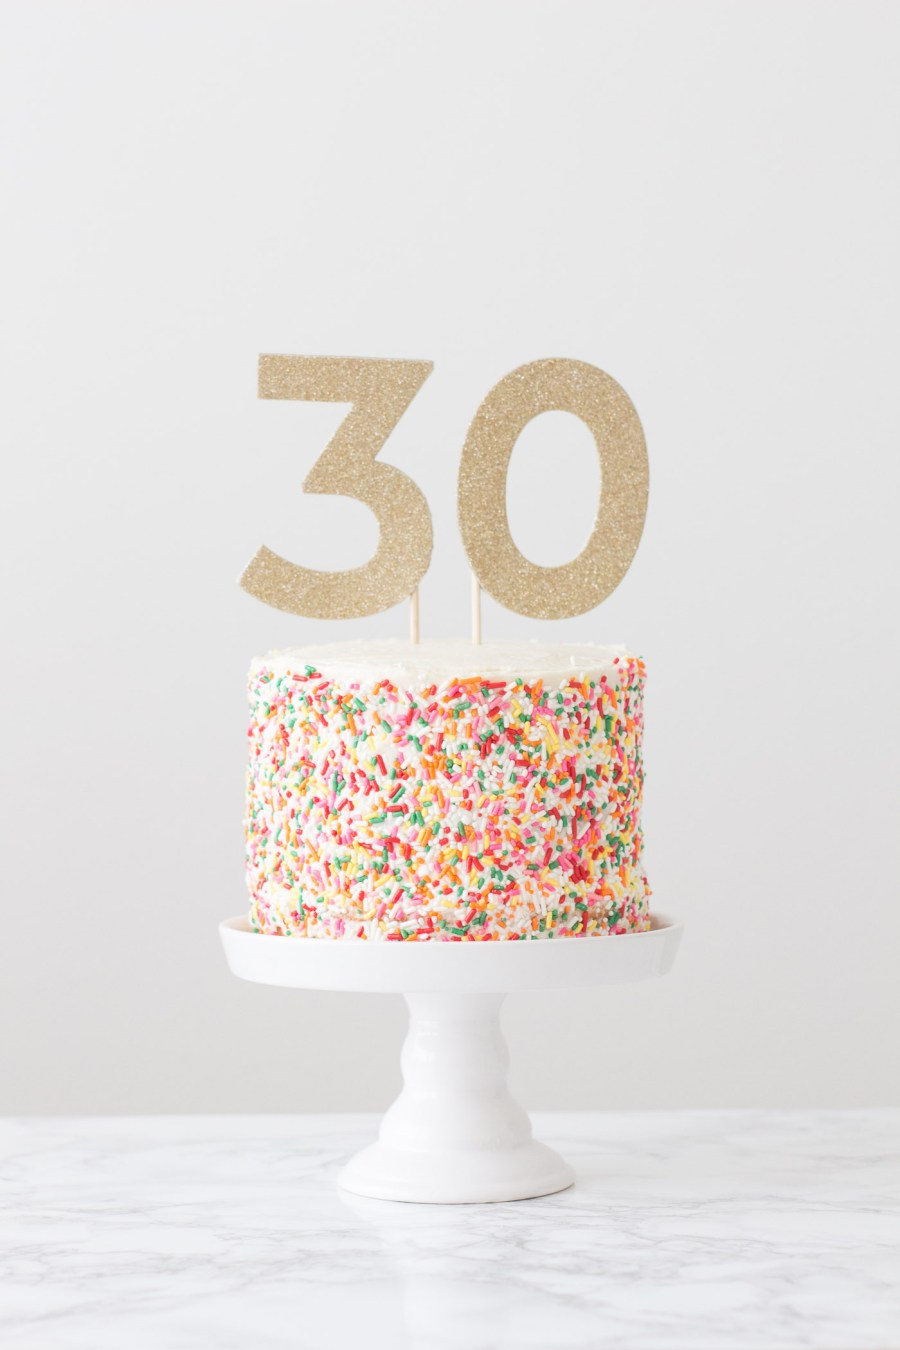 How To Decorate A Sprinkle Cake